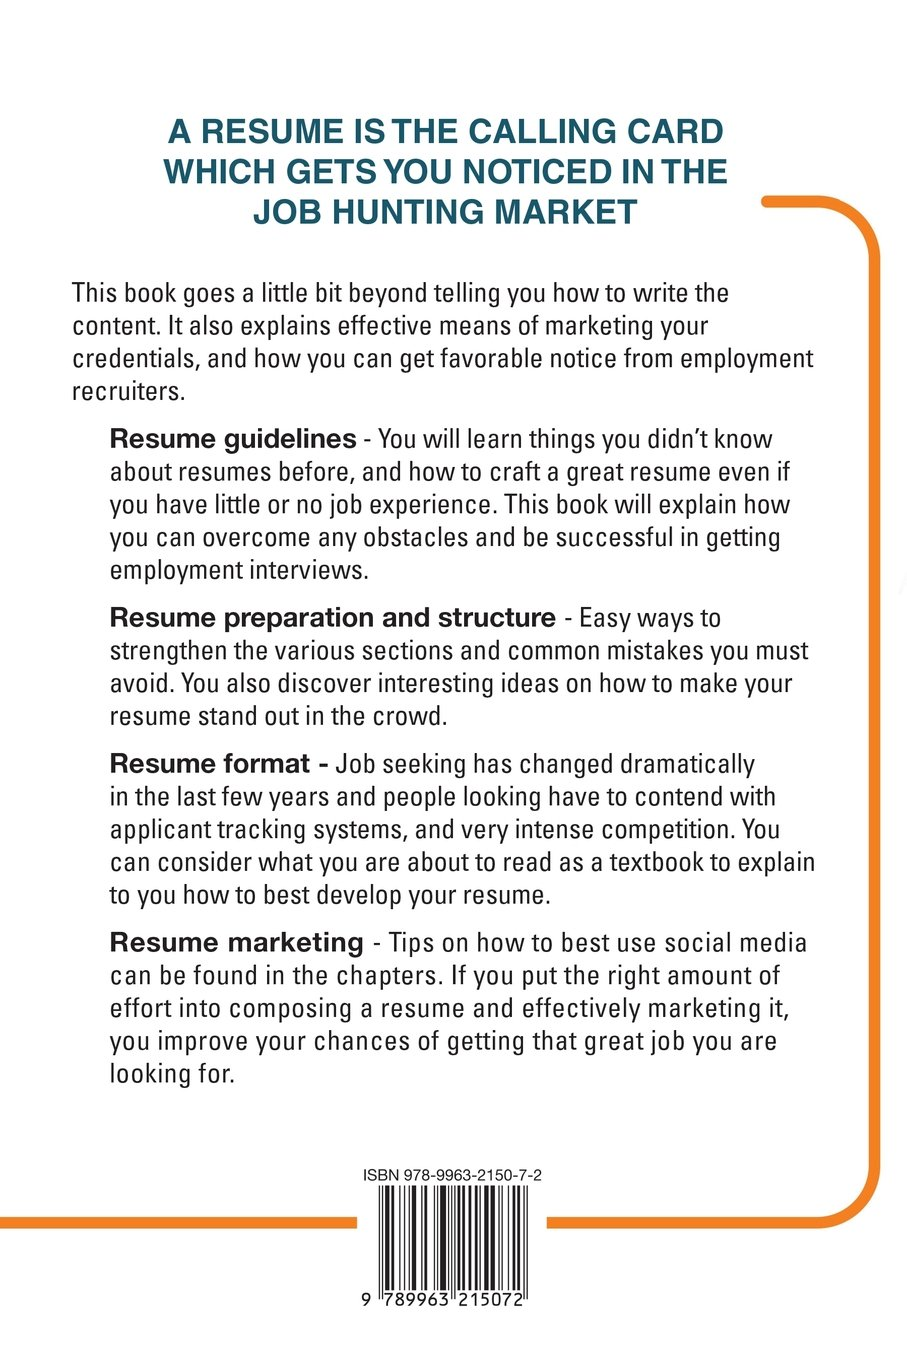 How to write a resume and market it online gregory goodrick how to write a resume and market it online gregory goodrick 9789963215072 amazon books ccuart Images